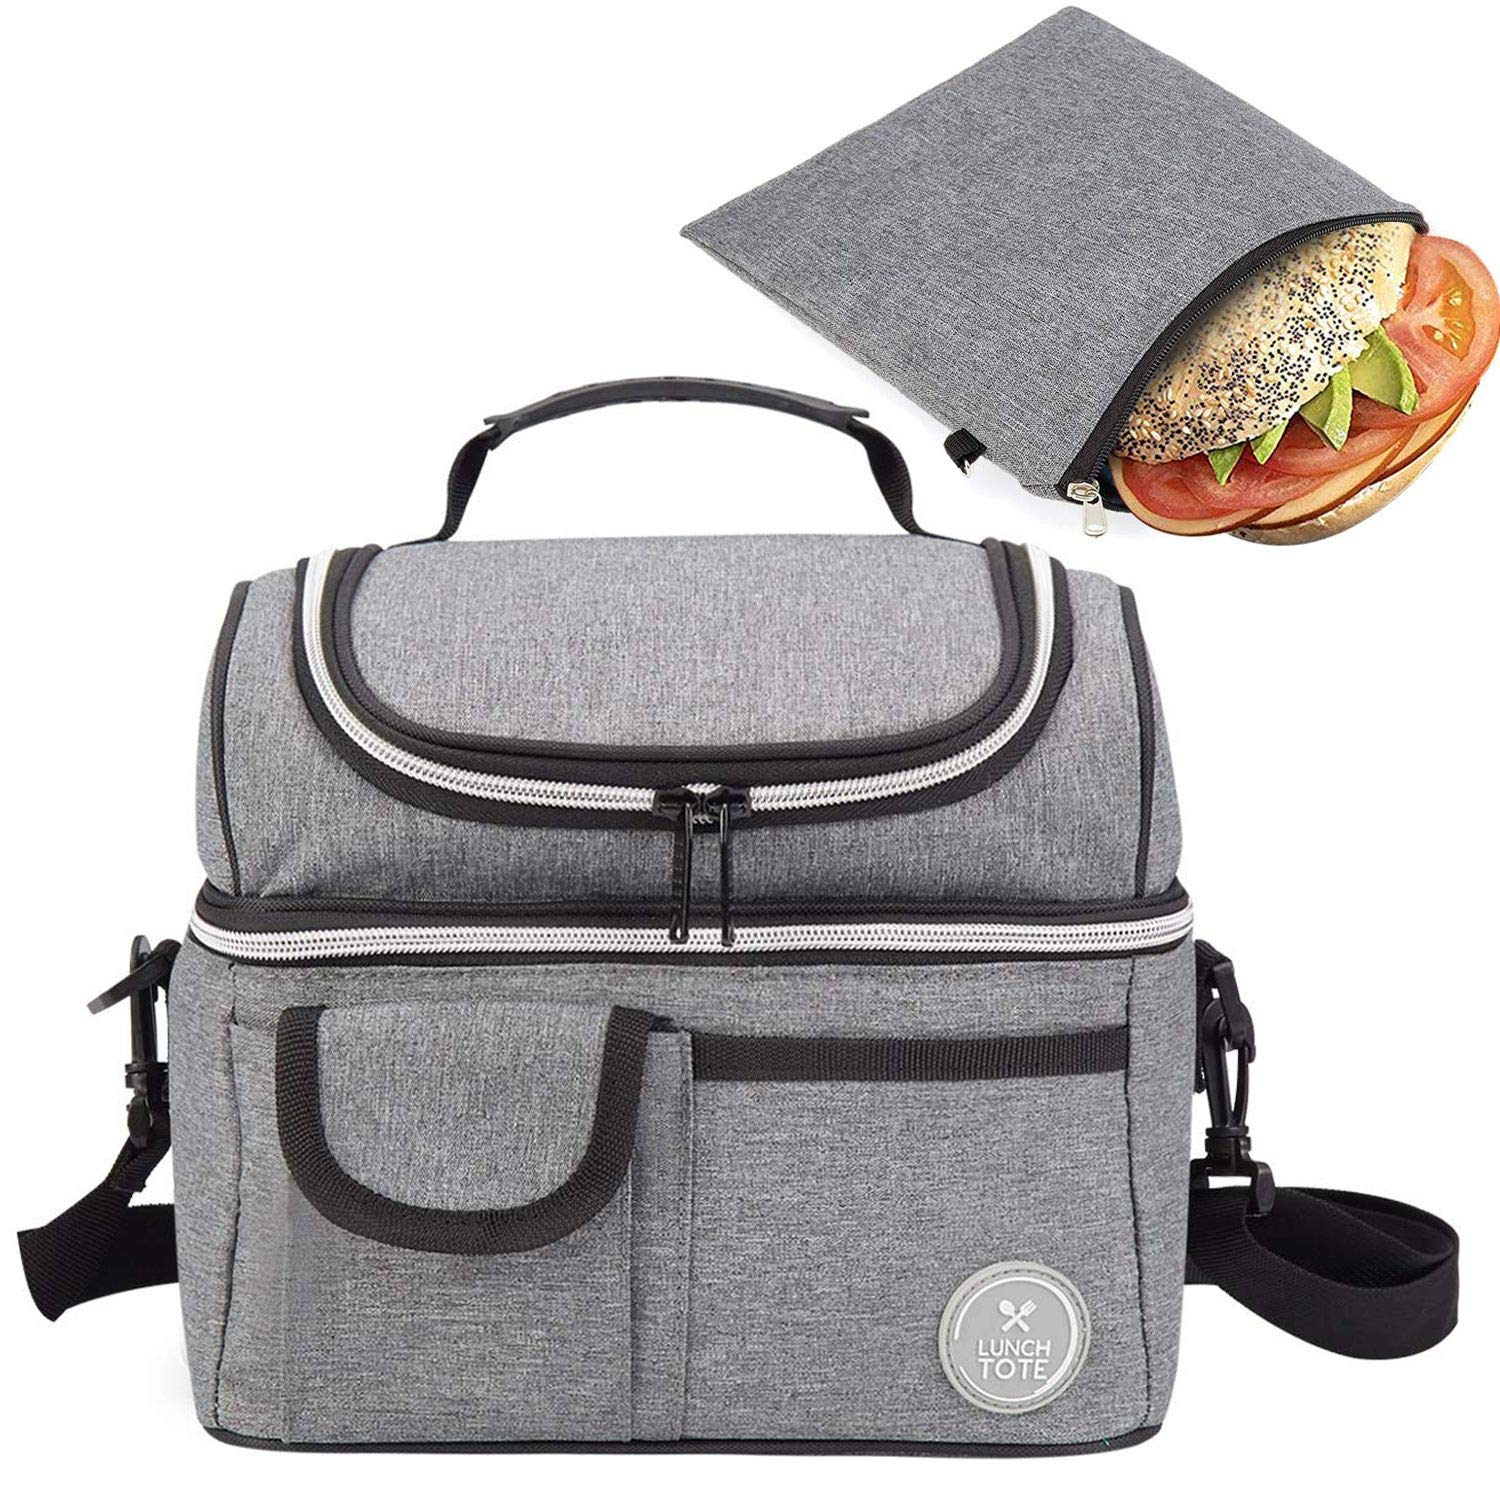 Lunch Tote Bag & Reusable Sandwich Bag Bundle - Double Compartment Lunch Tote and snack Ziploc Bag - Food Grade Quality -Insulated Lunch Box for Kids Women Men - Eco-Friendly Travel Lunch Cooler by lunch tote